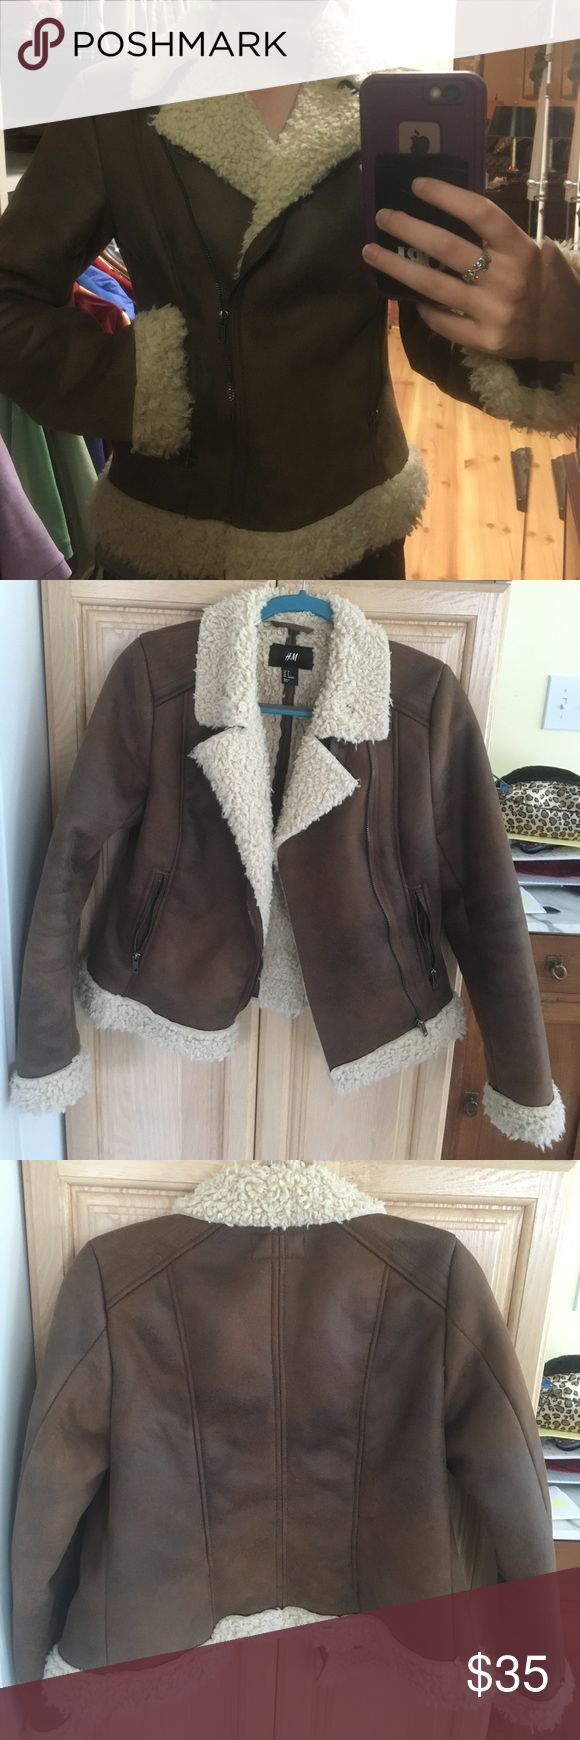 H&M winter coat Warm winter coat from H&M. Cozy inside will help keep you warm whether you are wearing a t shirt or a sweater under this cute winter jacket. Like new, very strong jacket. Size 8 but fits more like a 4! H&M Jackets & Coats Utility Jackets